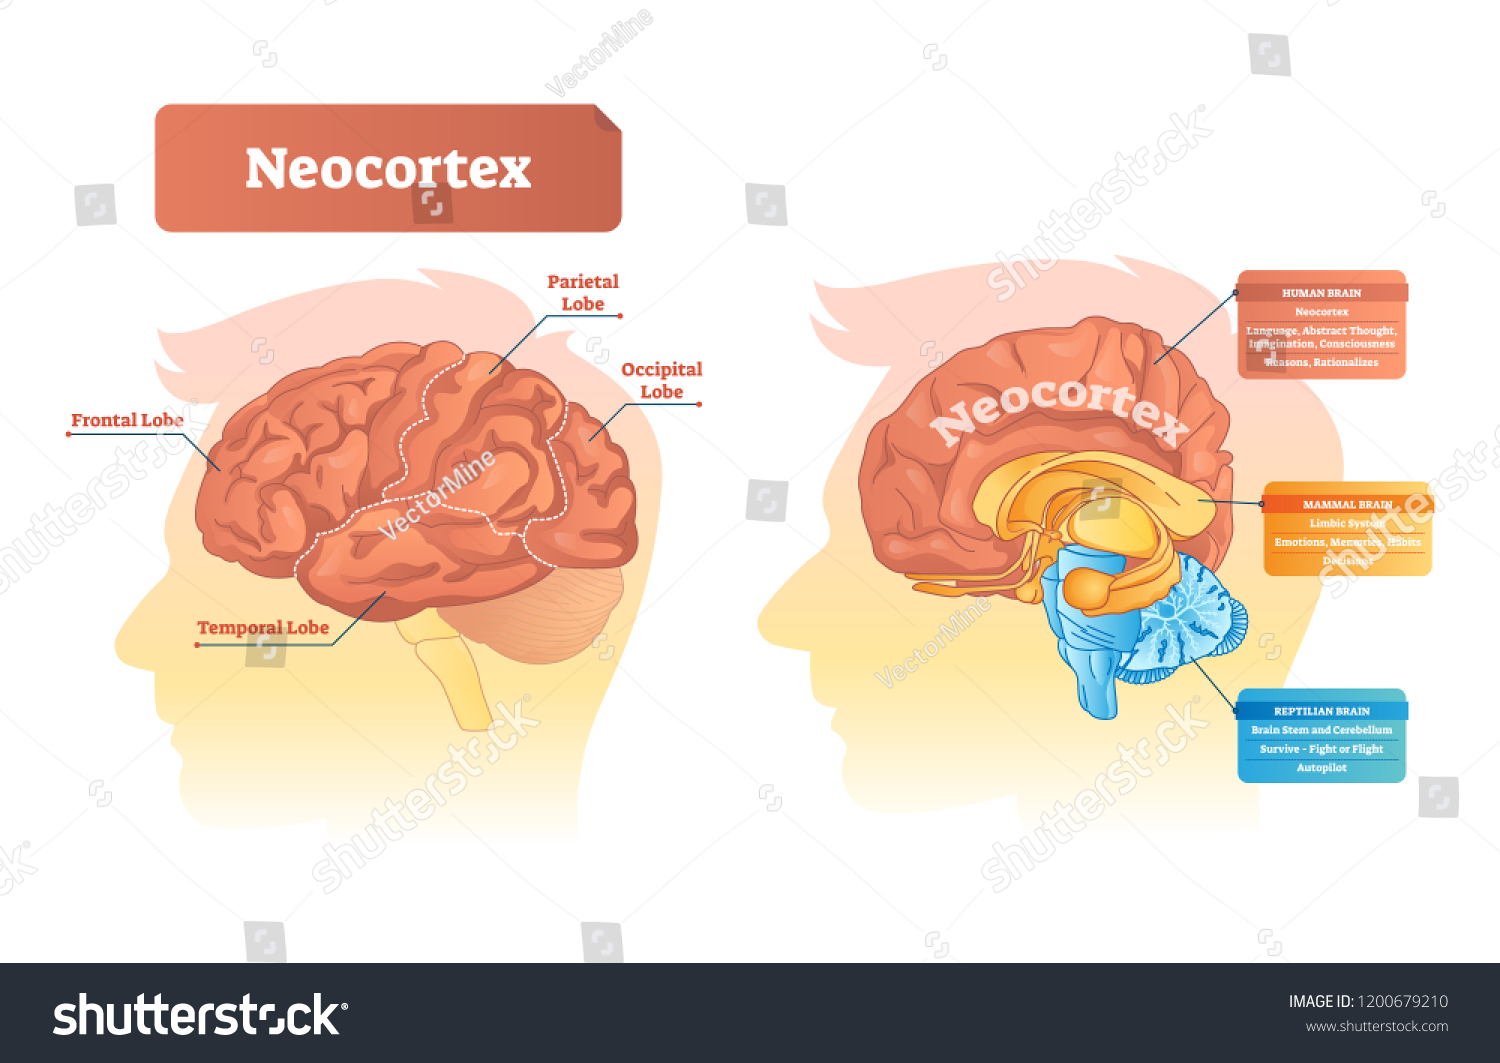 hight resolution of neocortex vector illustration labeled diagram with location and functions frontal parietal occipital